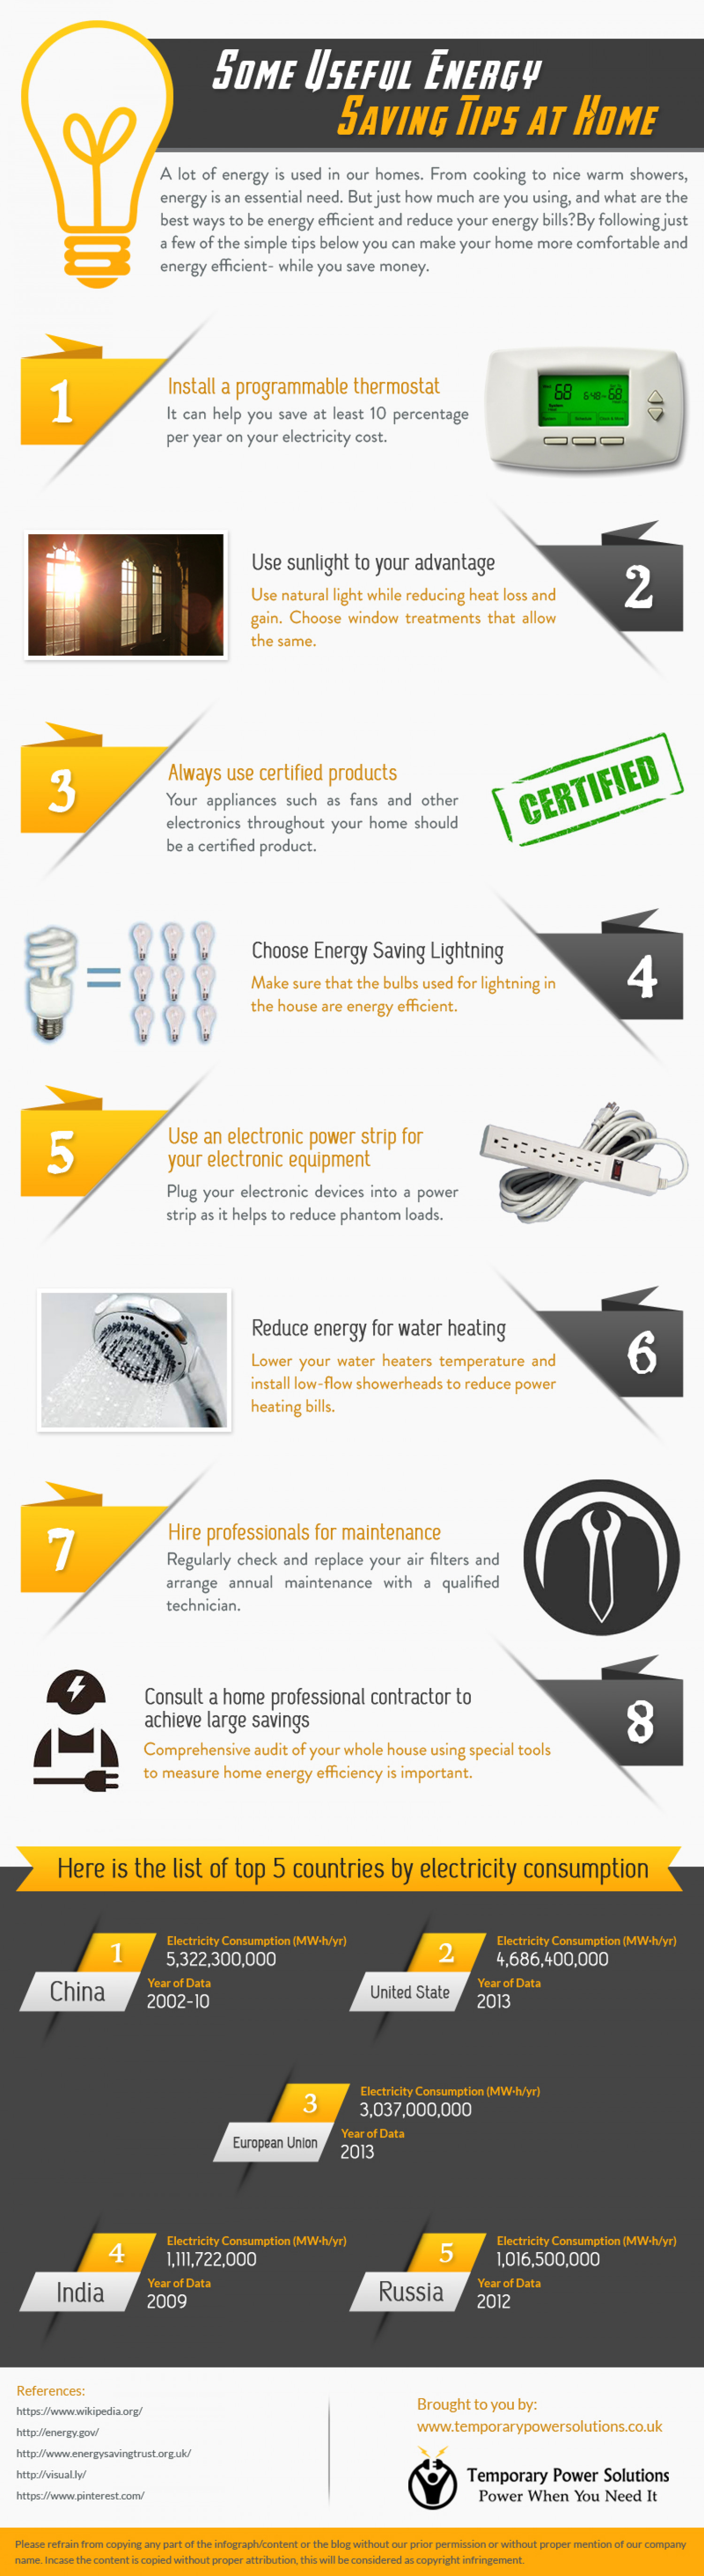 Some Useful Energy Saving Tips at Home